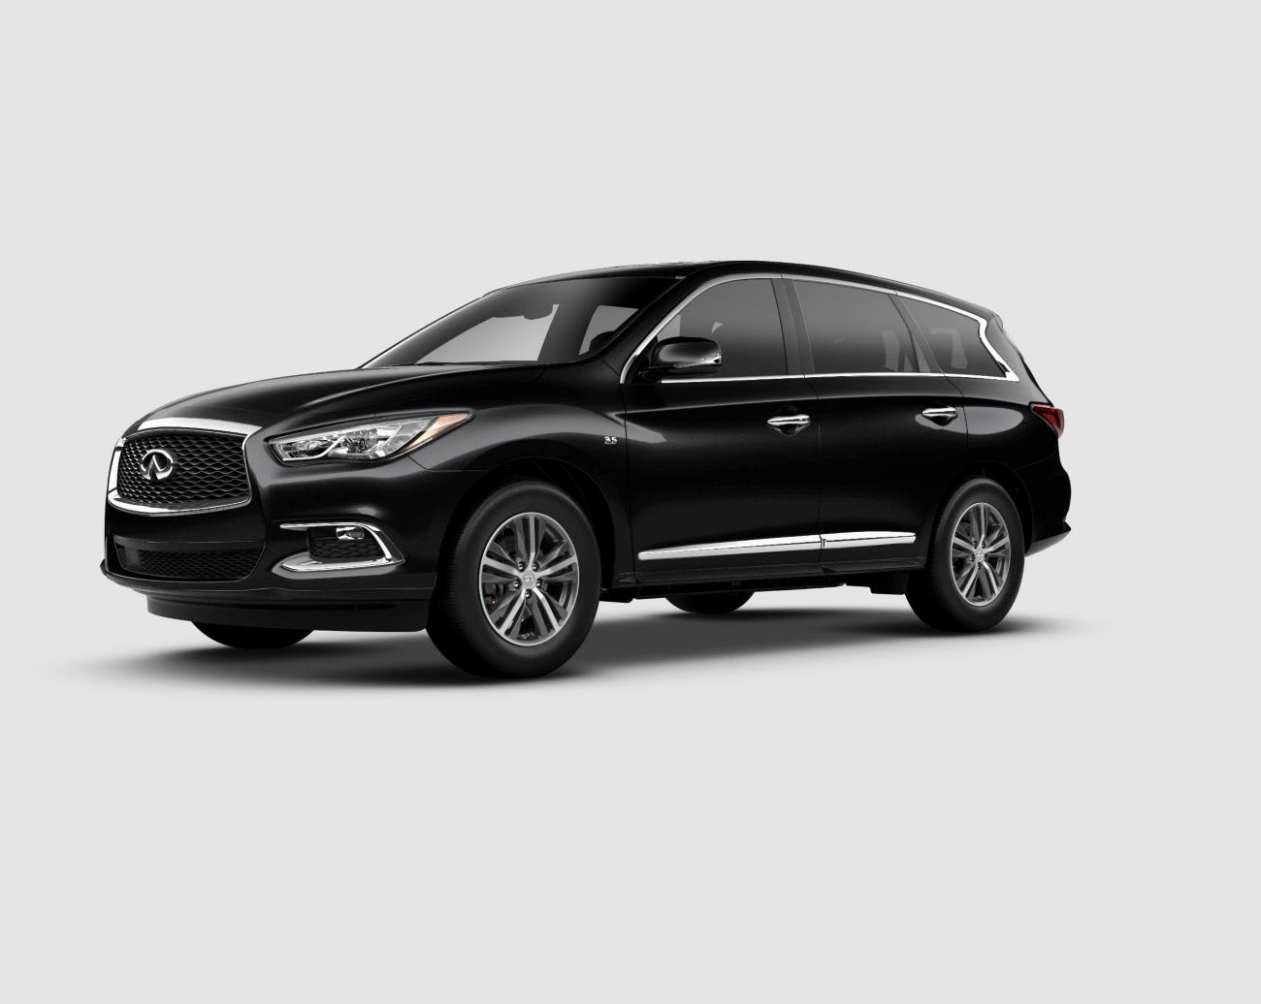 infiniti ex7 7 Price 7*7 - infiniti ex7 7 Review and ..